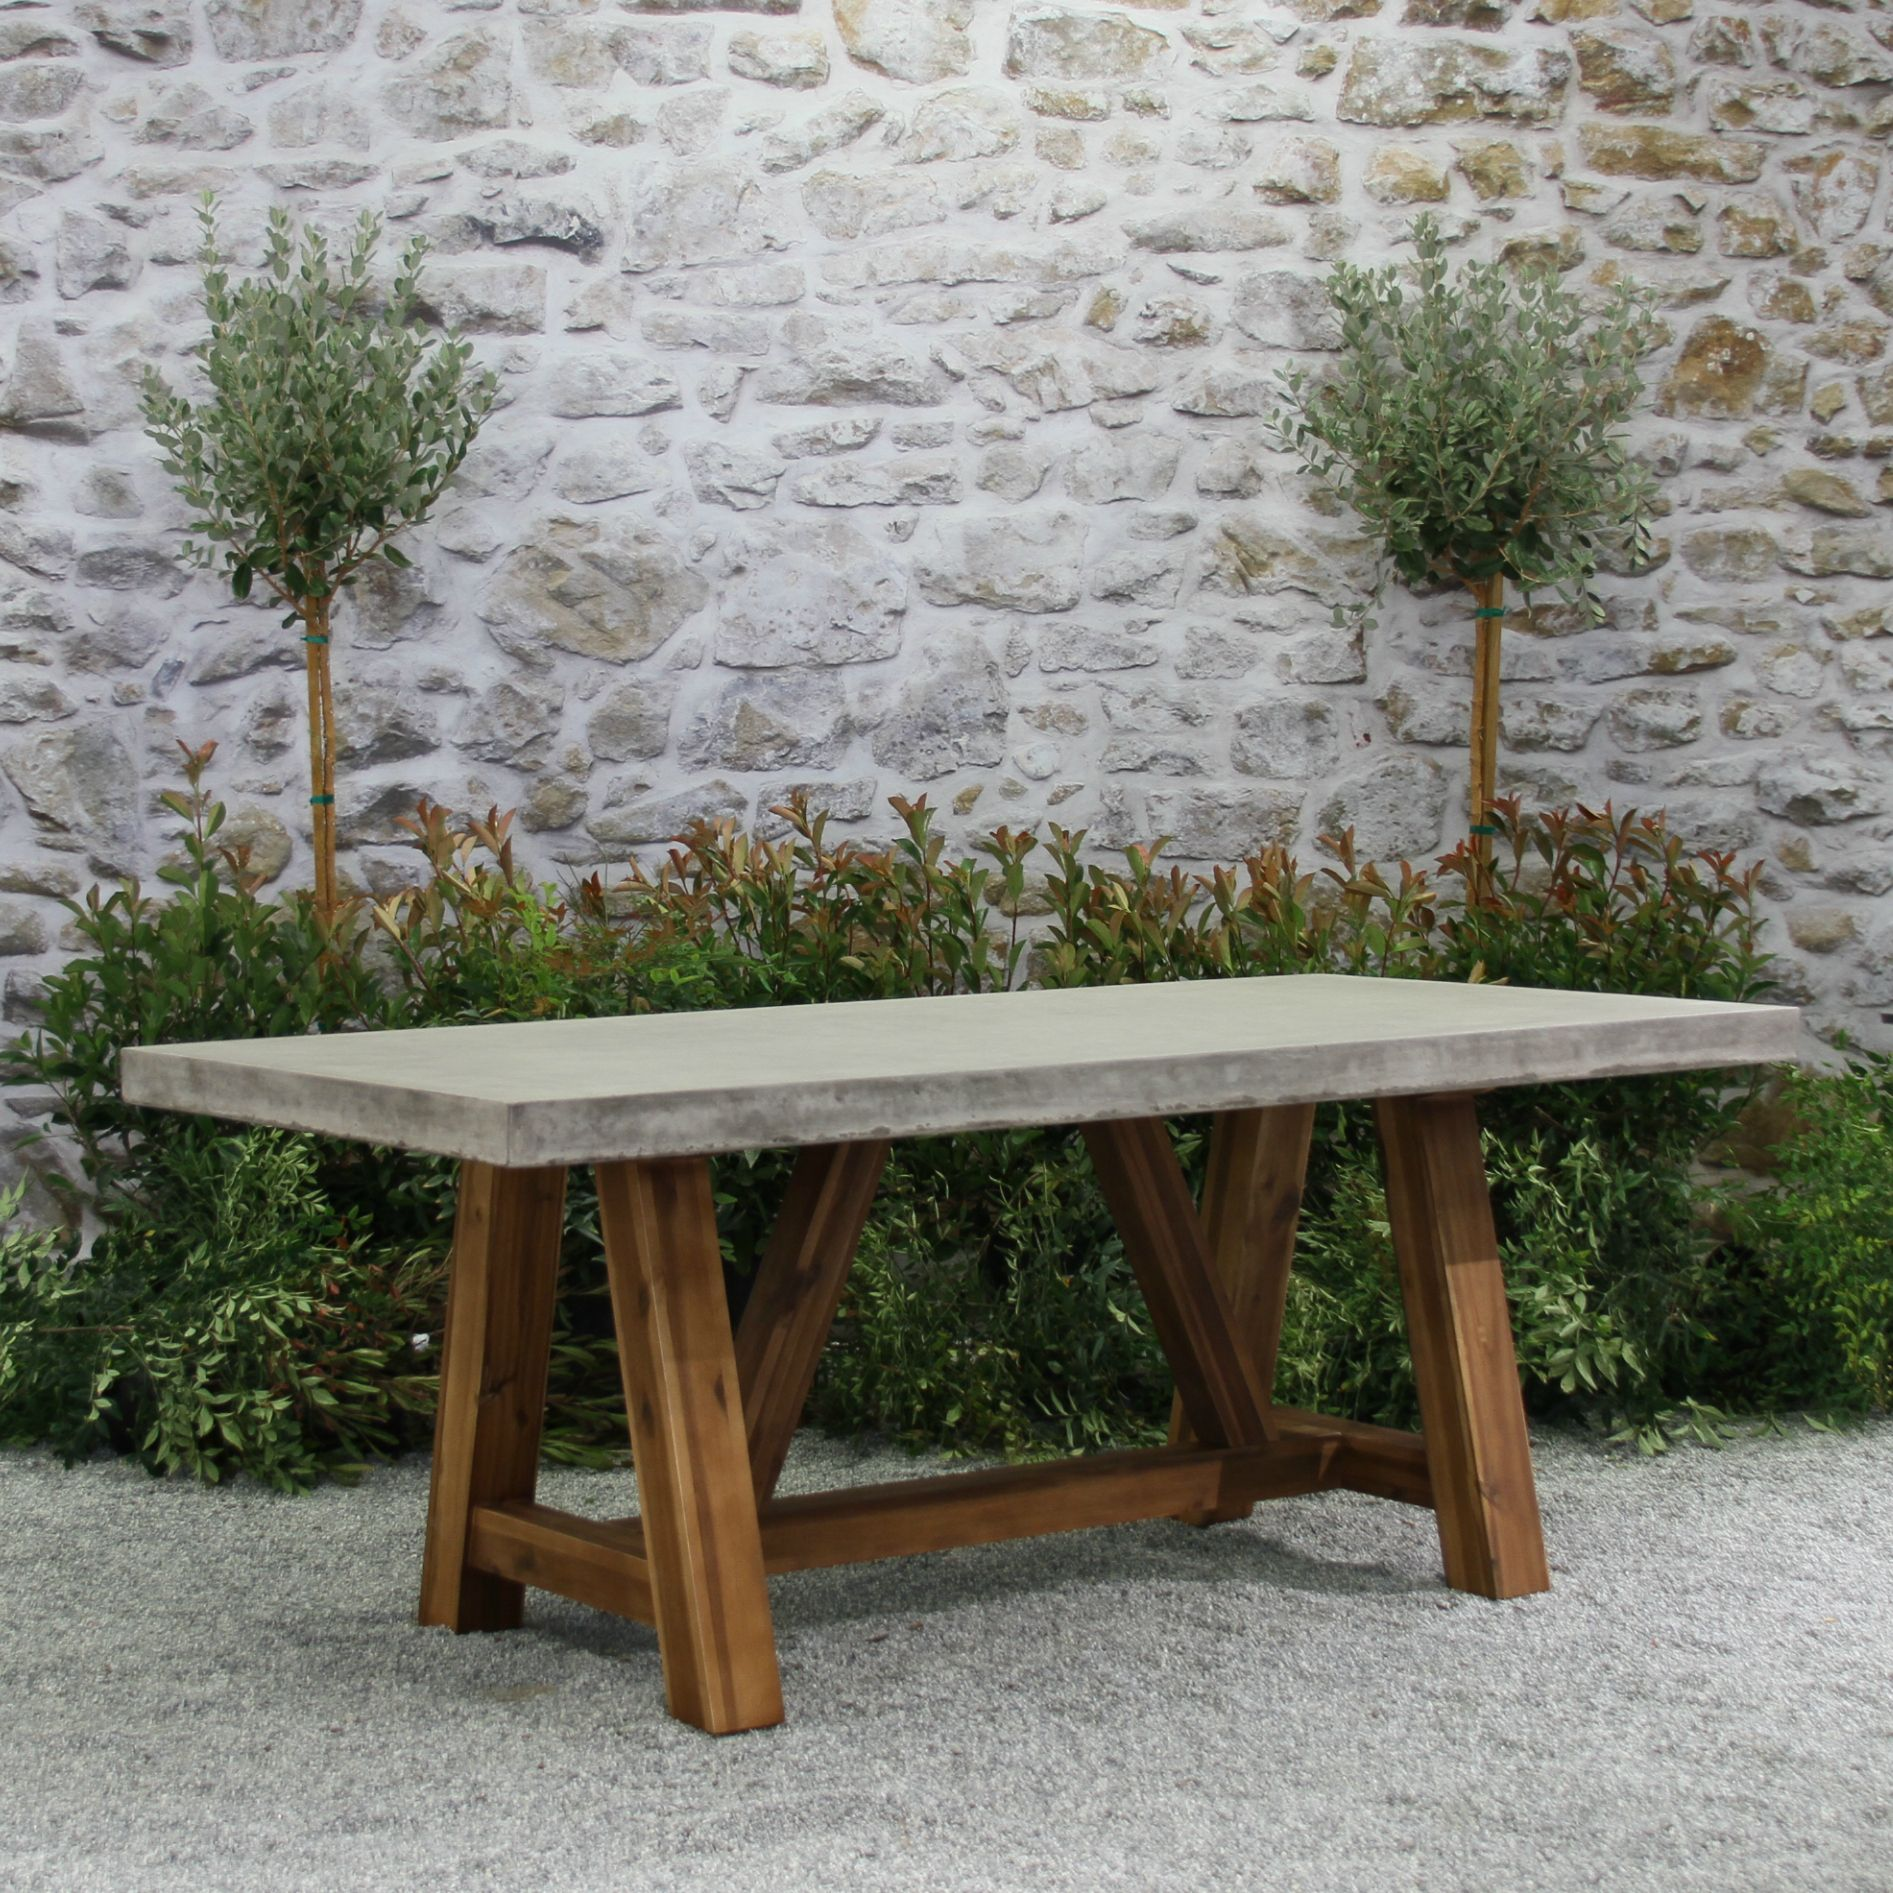 Outdoor tables on sale now An outdoor table from our teak outdoor